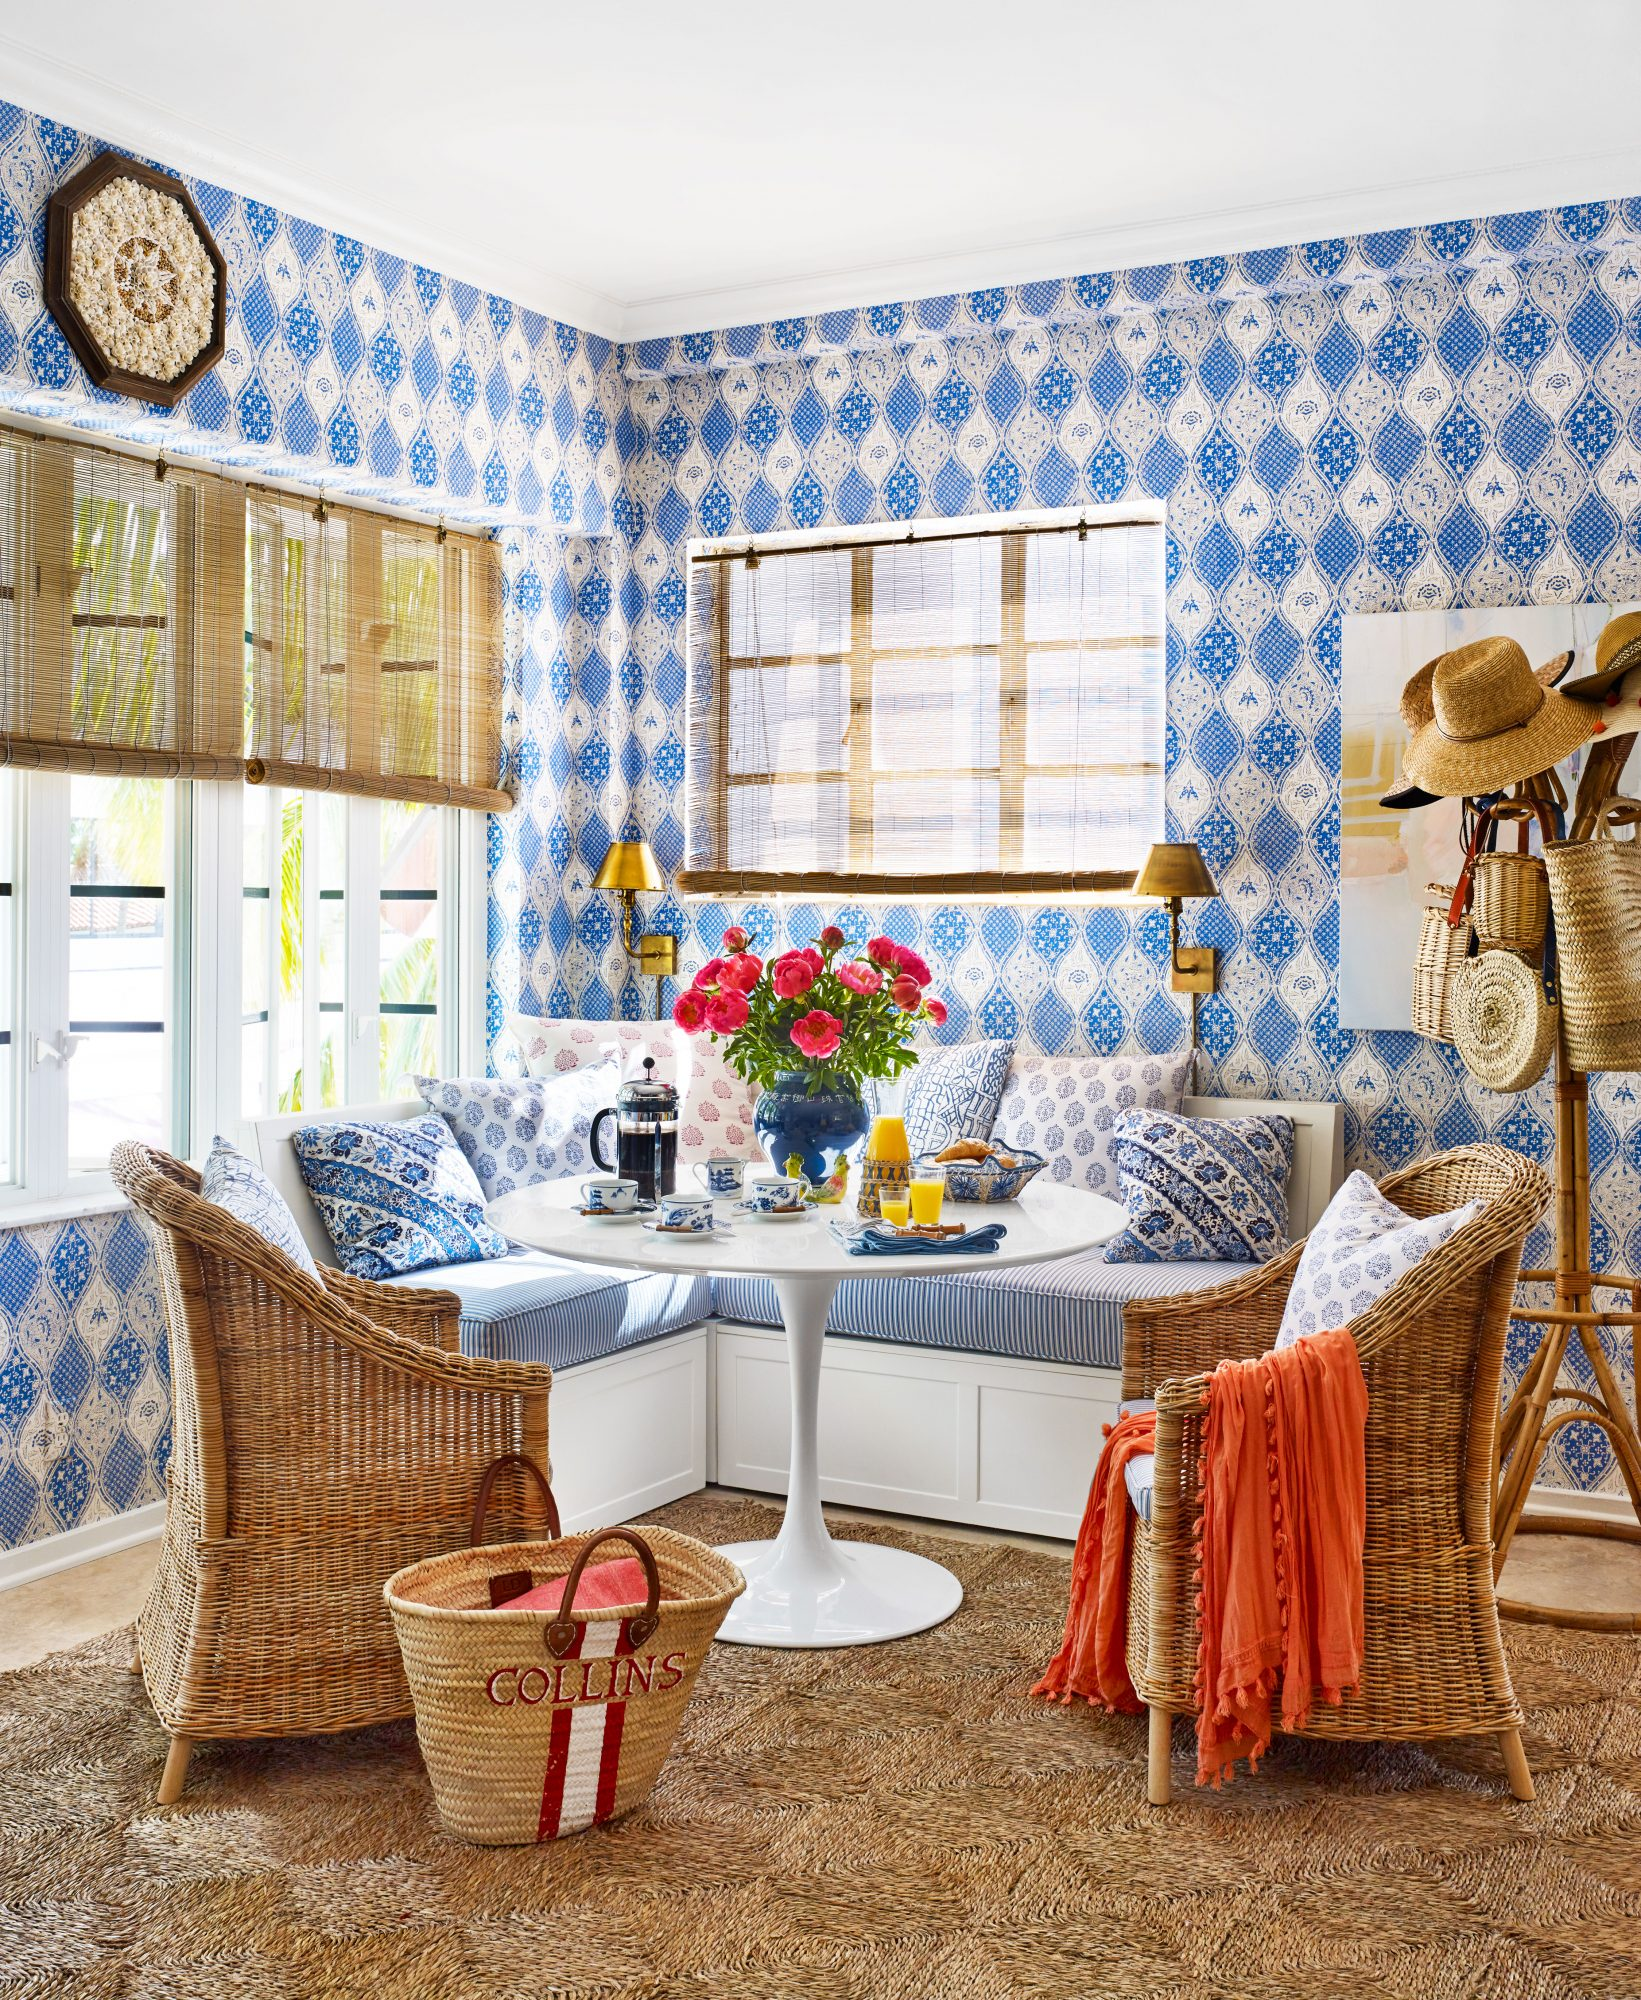 Emily Painter Palm Beach Rental Dining Area wit Blue Wallpaper and White Tulip Table